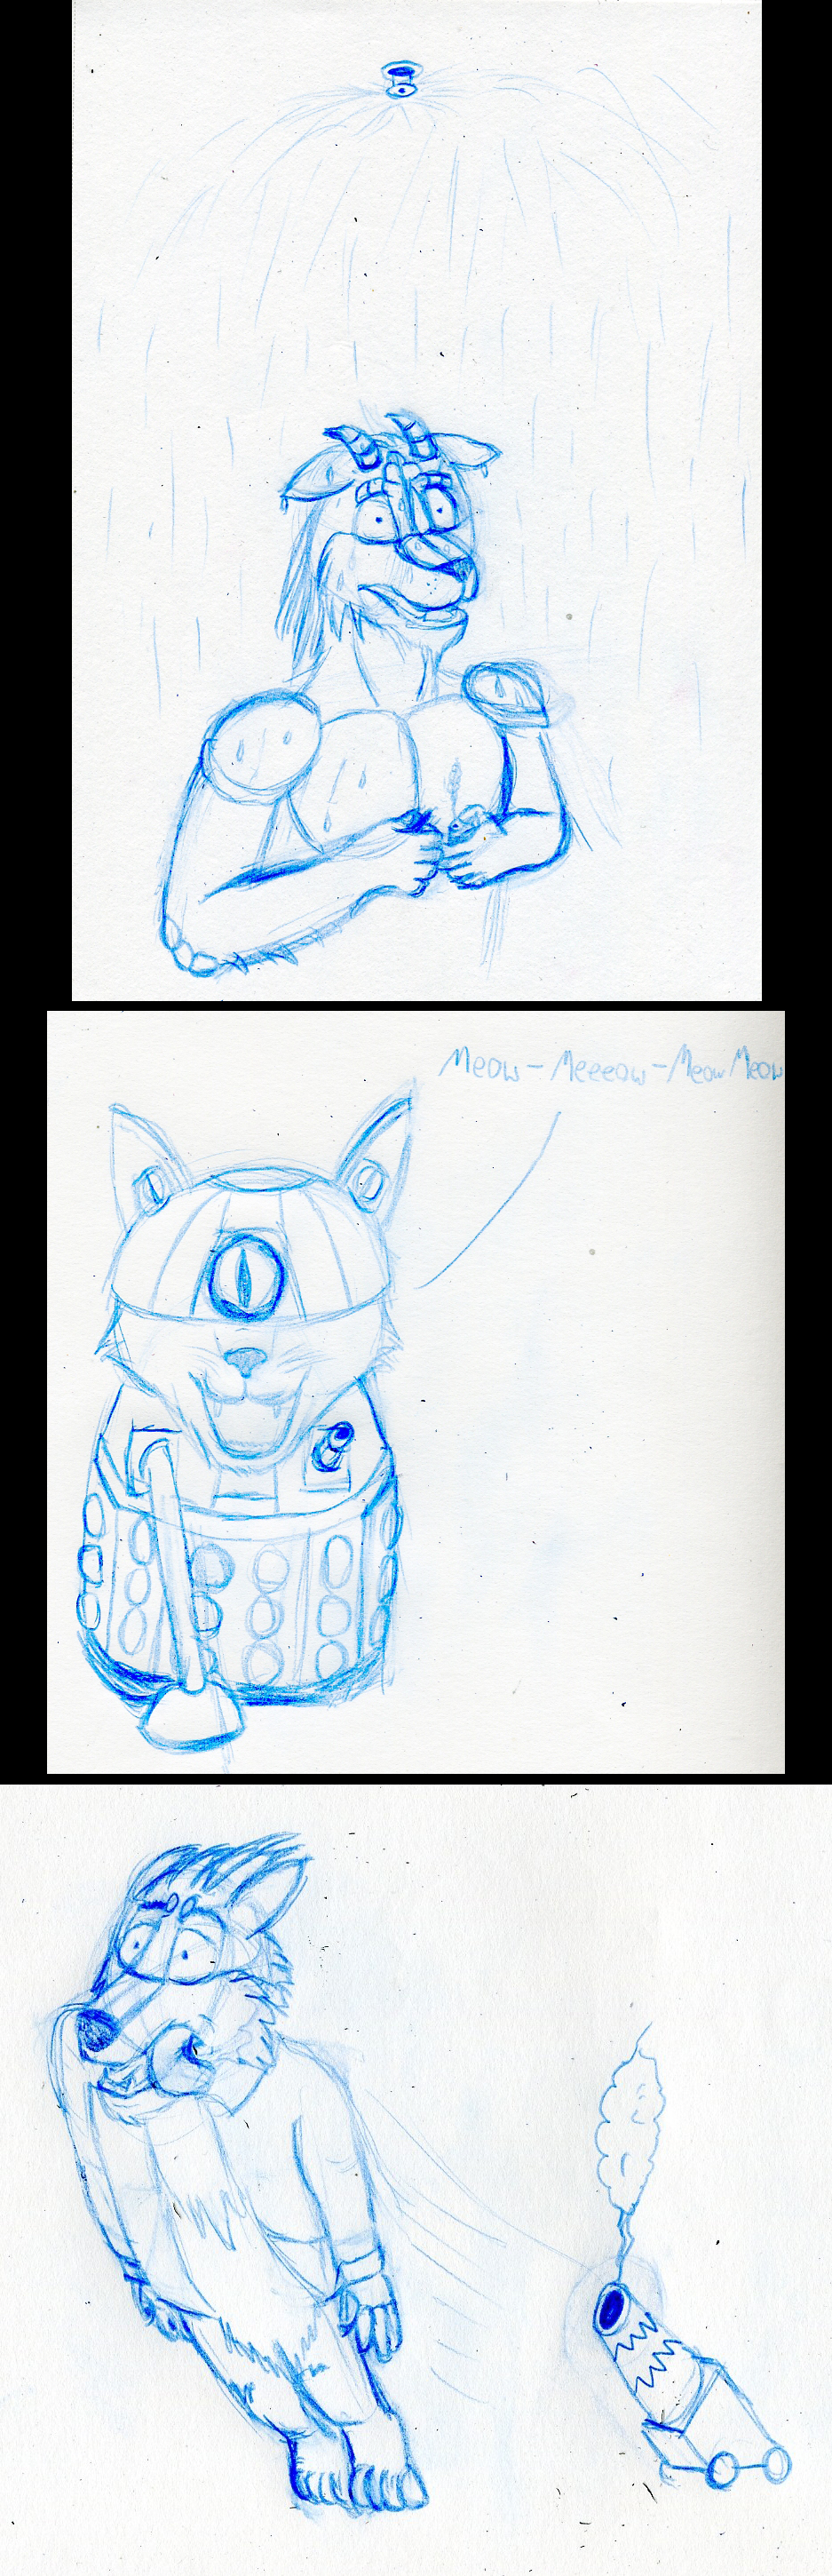 Free Twitter Sketches for 11-11-2011